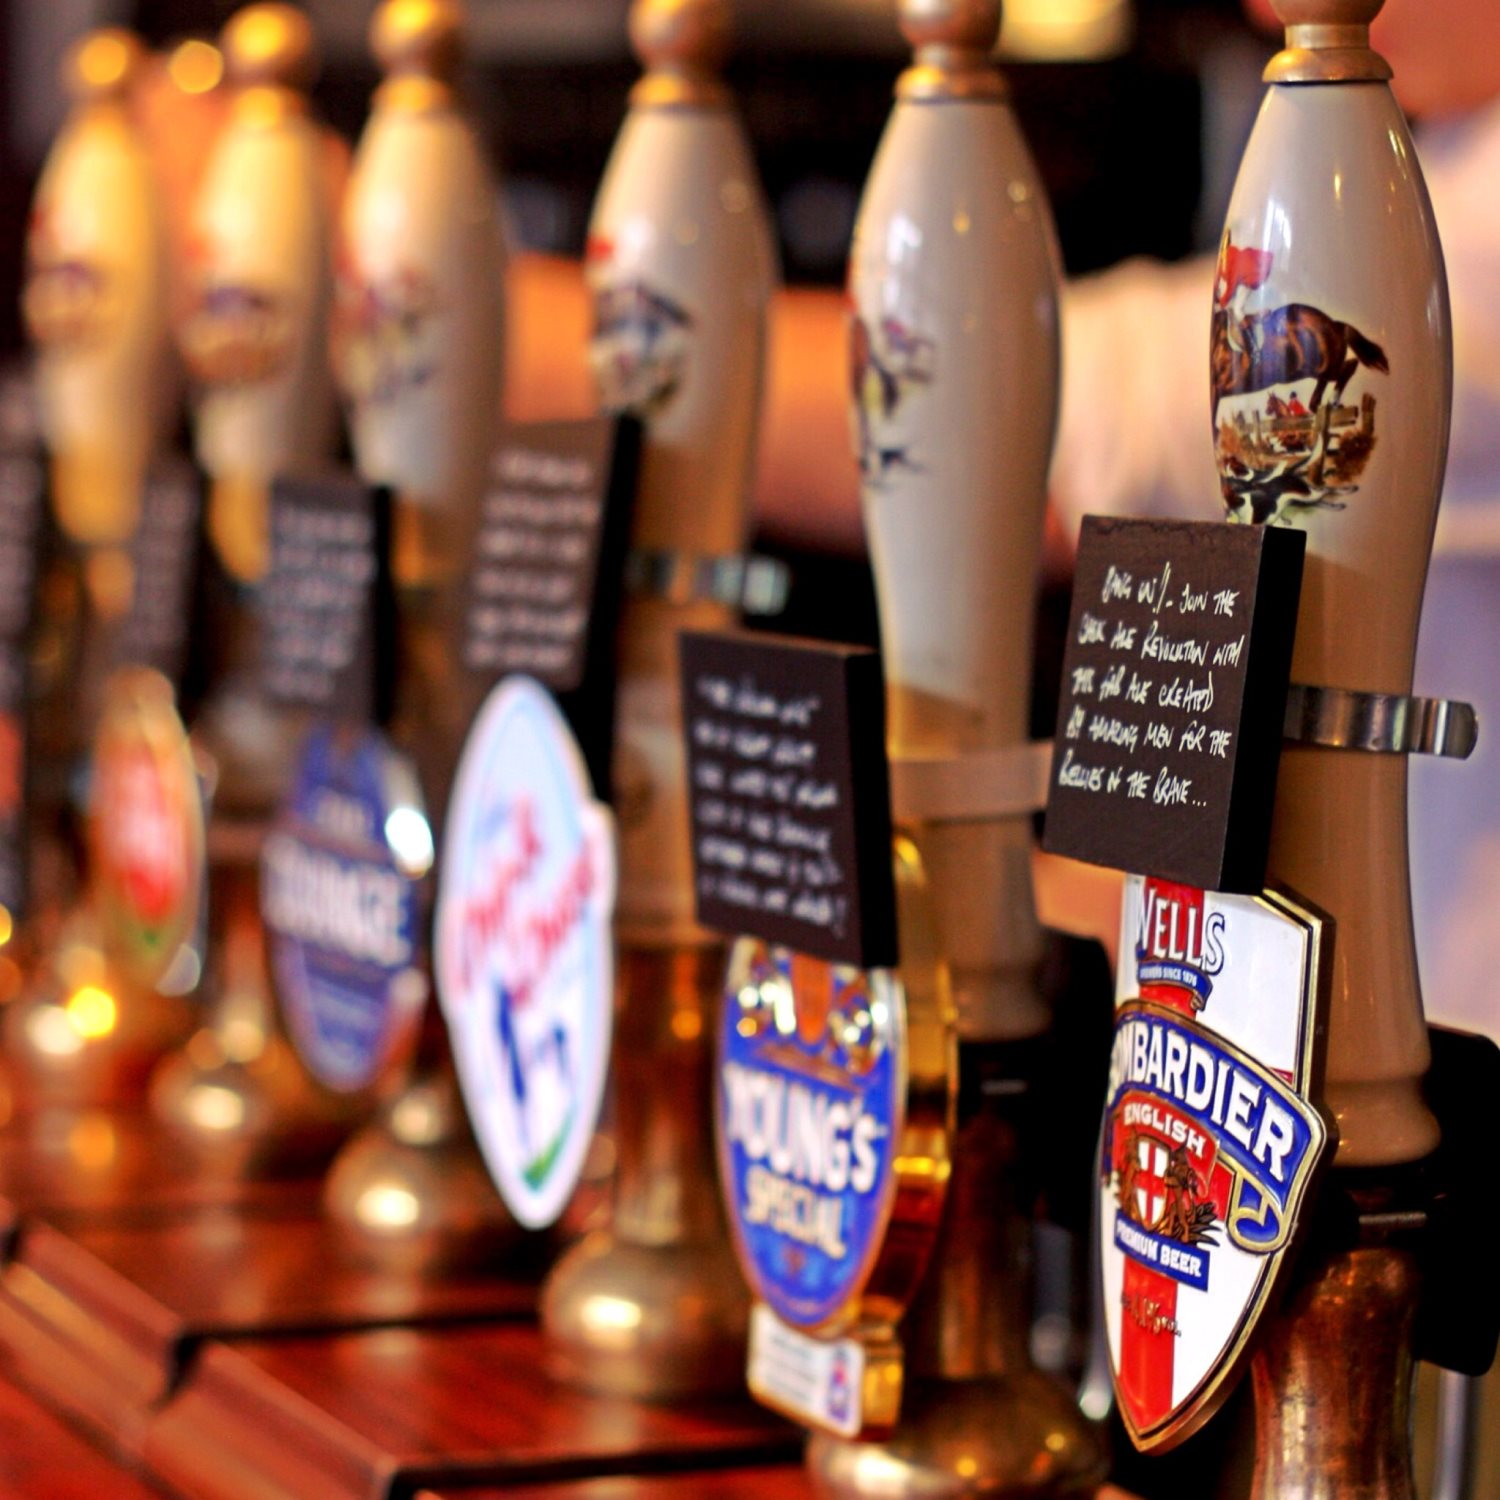 Our fine collection of 12 craft cask ales